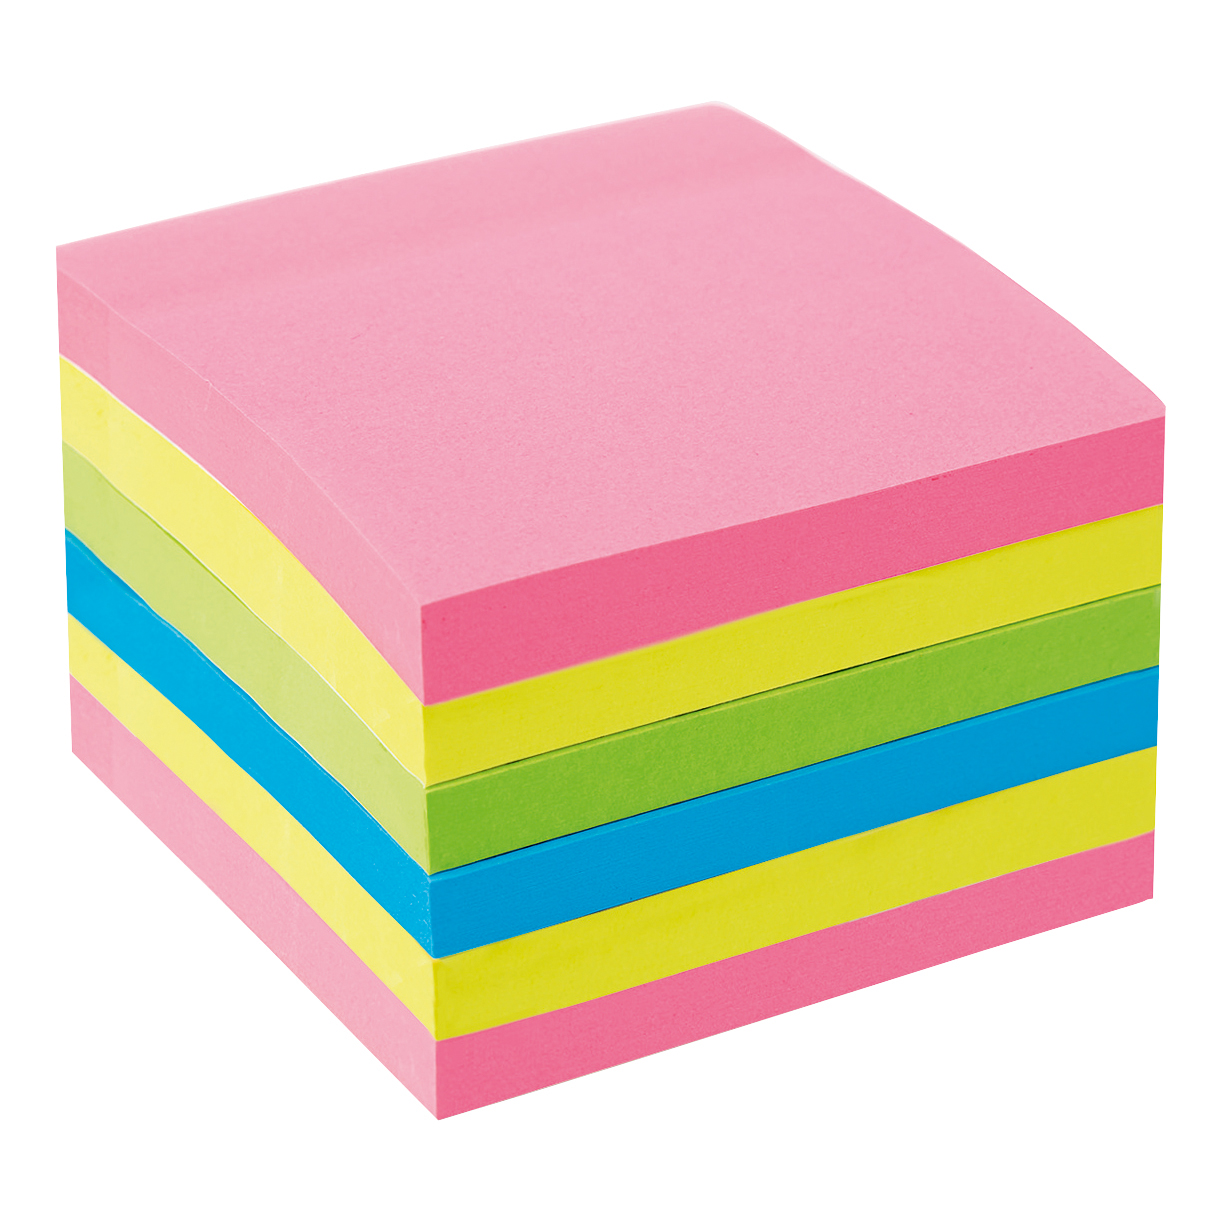 Self adhesive note paper 5 Star Office Extra Sticky Re-Move Notes Pad of 90 Sheets 76x76mm 4 Assorted Neon Colours Pack 6